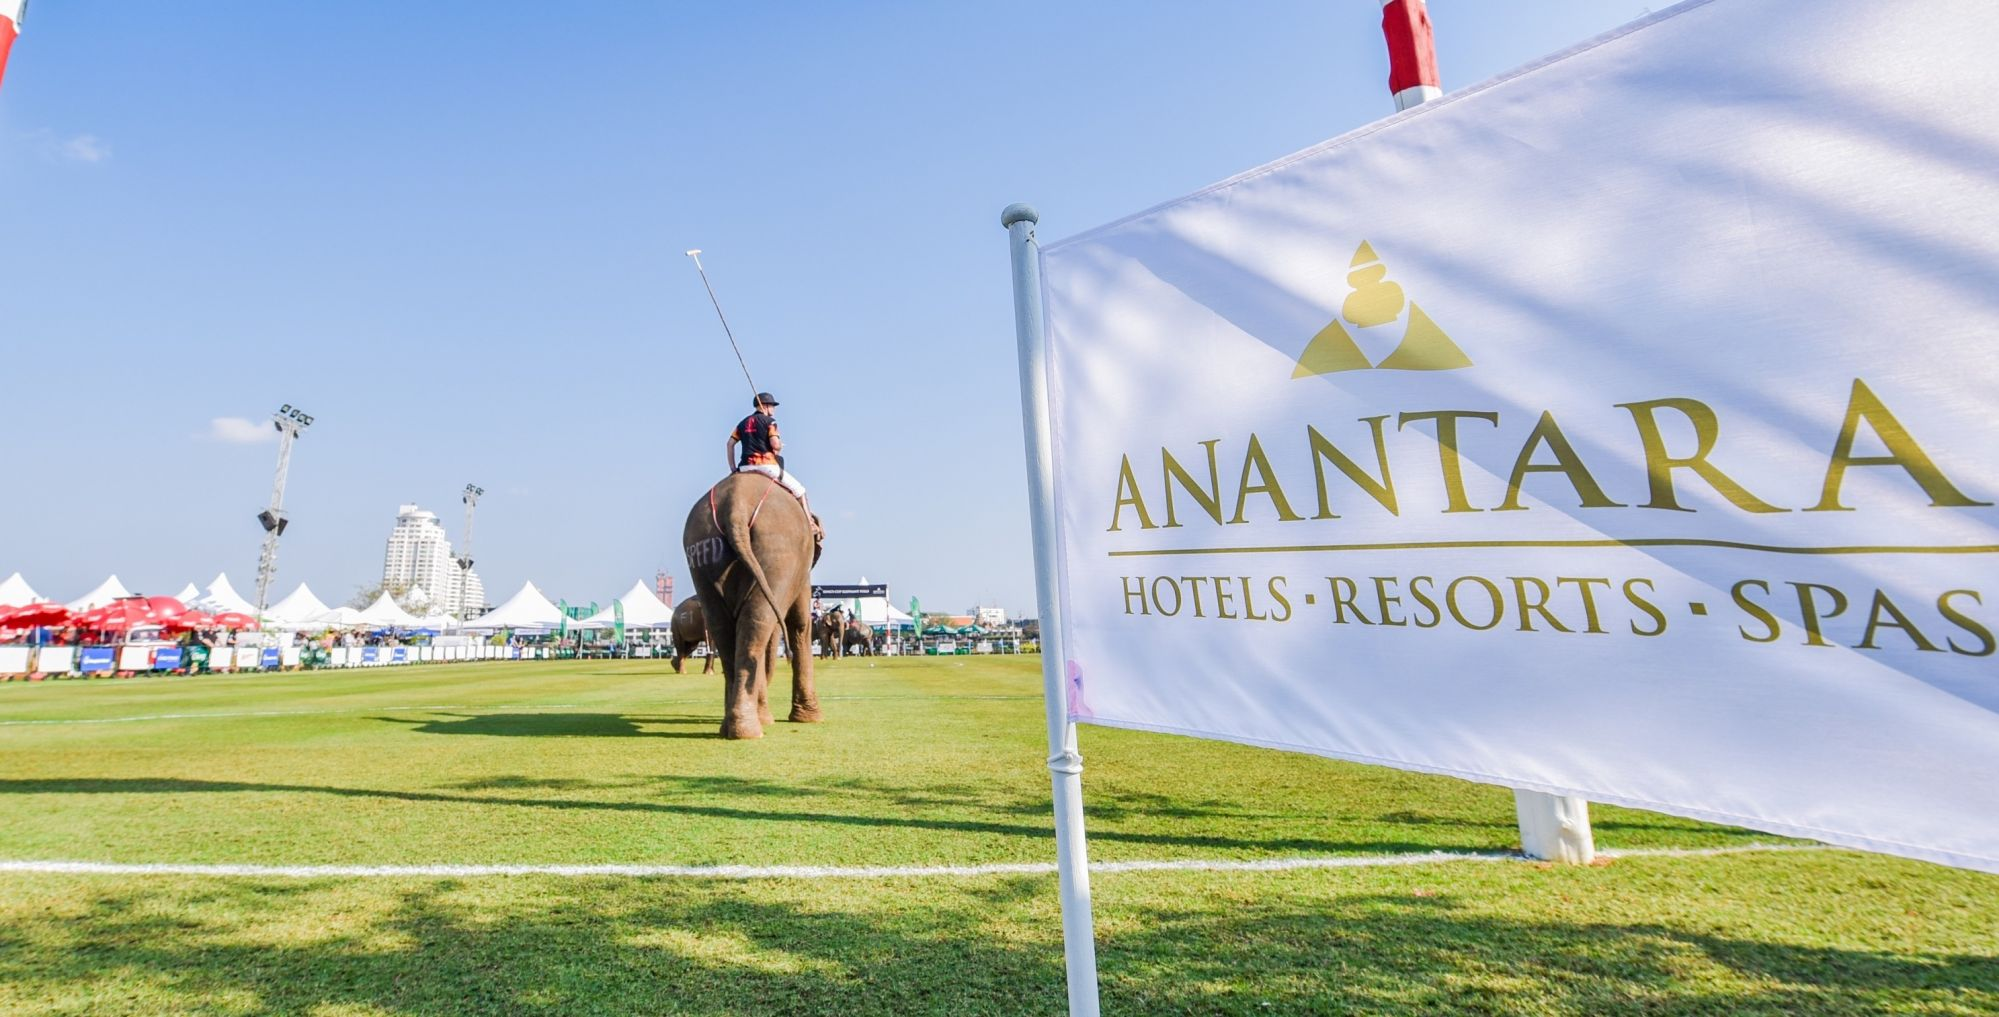 4 Things To Know About the Anantara King's Cup Elephant Polo Tournament